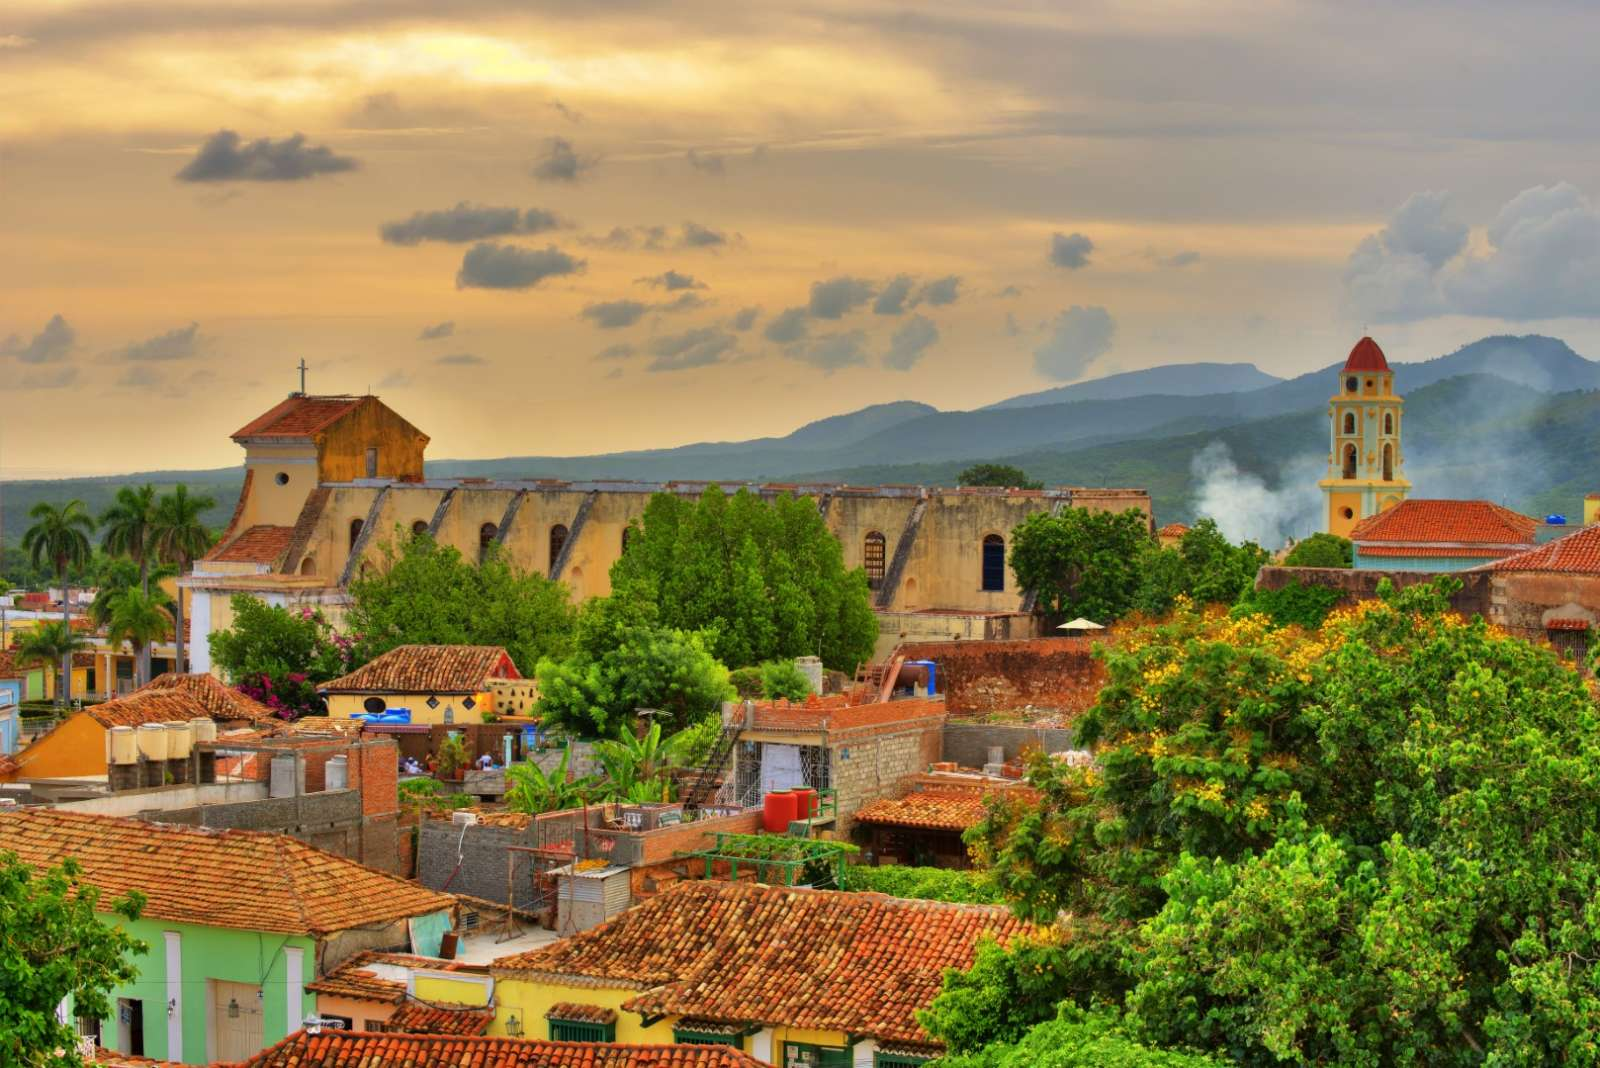 Aerial view over Trinidad, Cuba at sunset